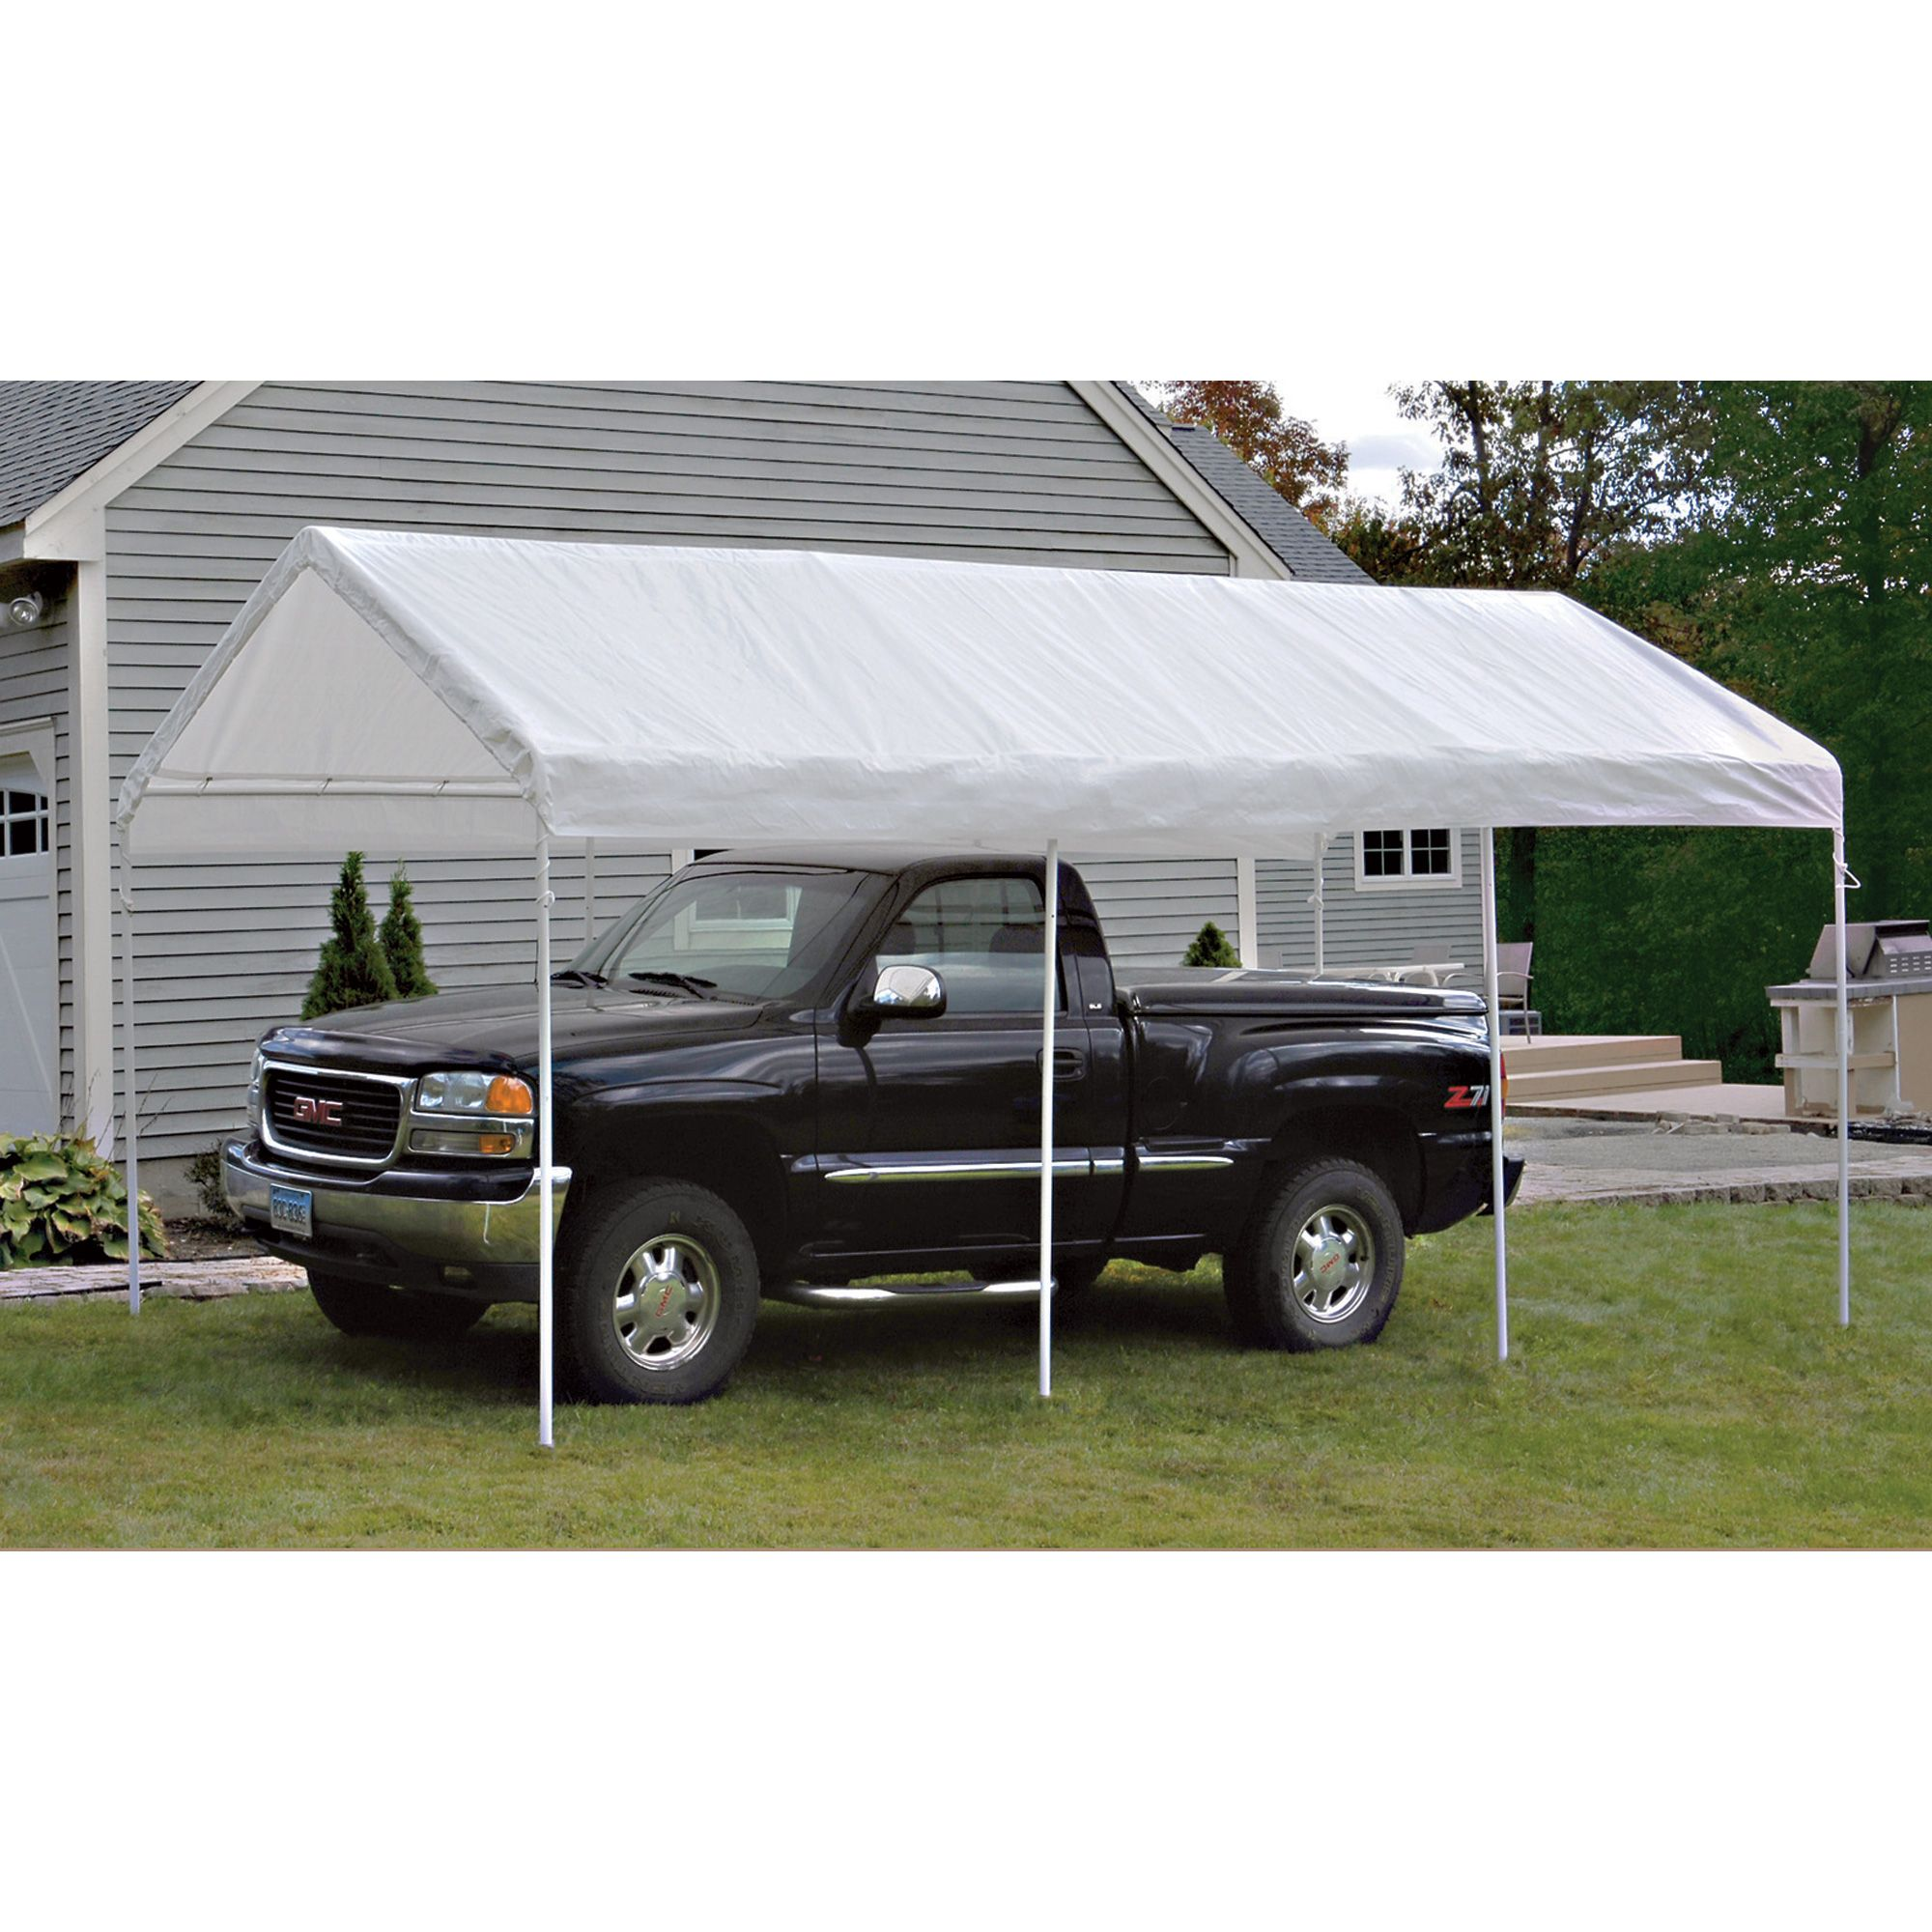 Shelterlogic Outdoor Canopy And Enclosure With Windows 20ft L X 10ft W White Model 23534 In 2020 Canopy Outdoor Canopy Canopy Shelter